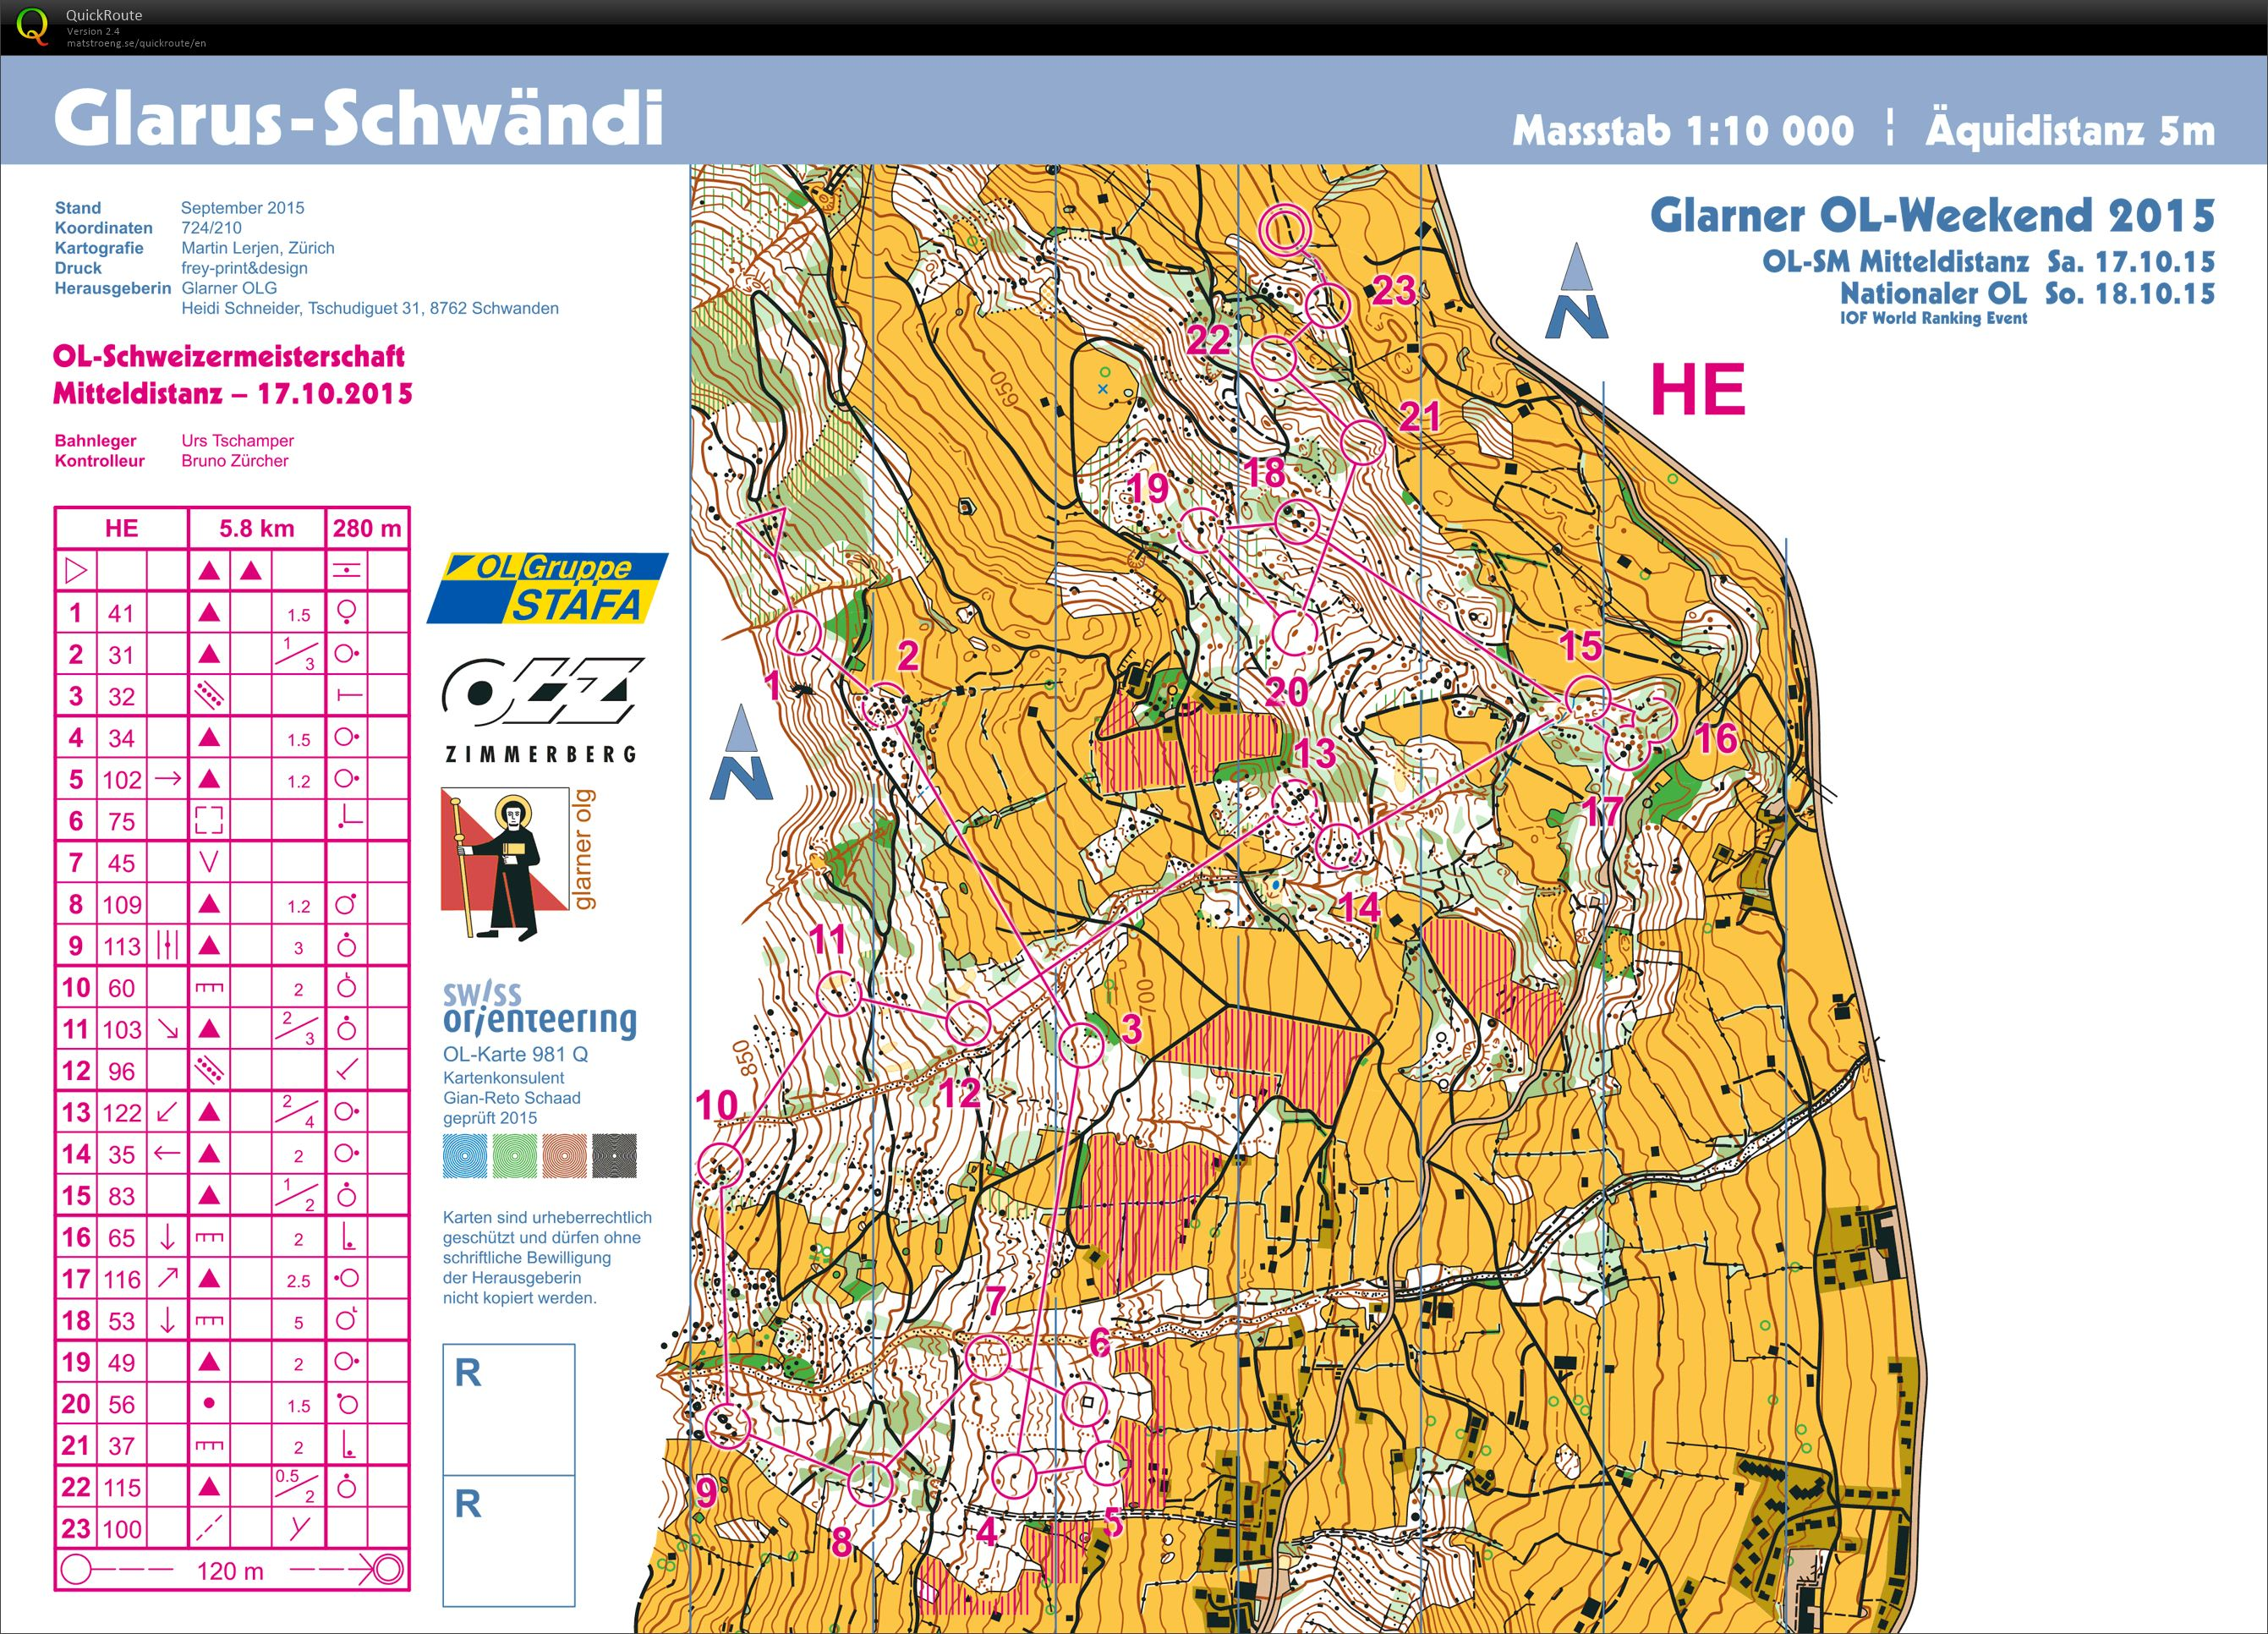 Swiss middle champs (17.10.2015)